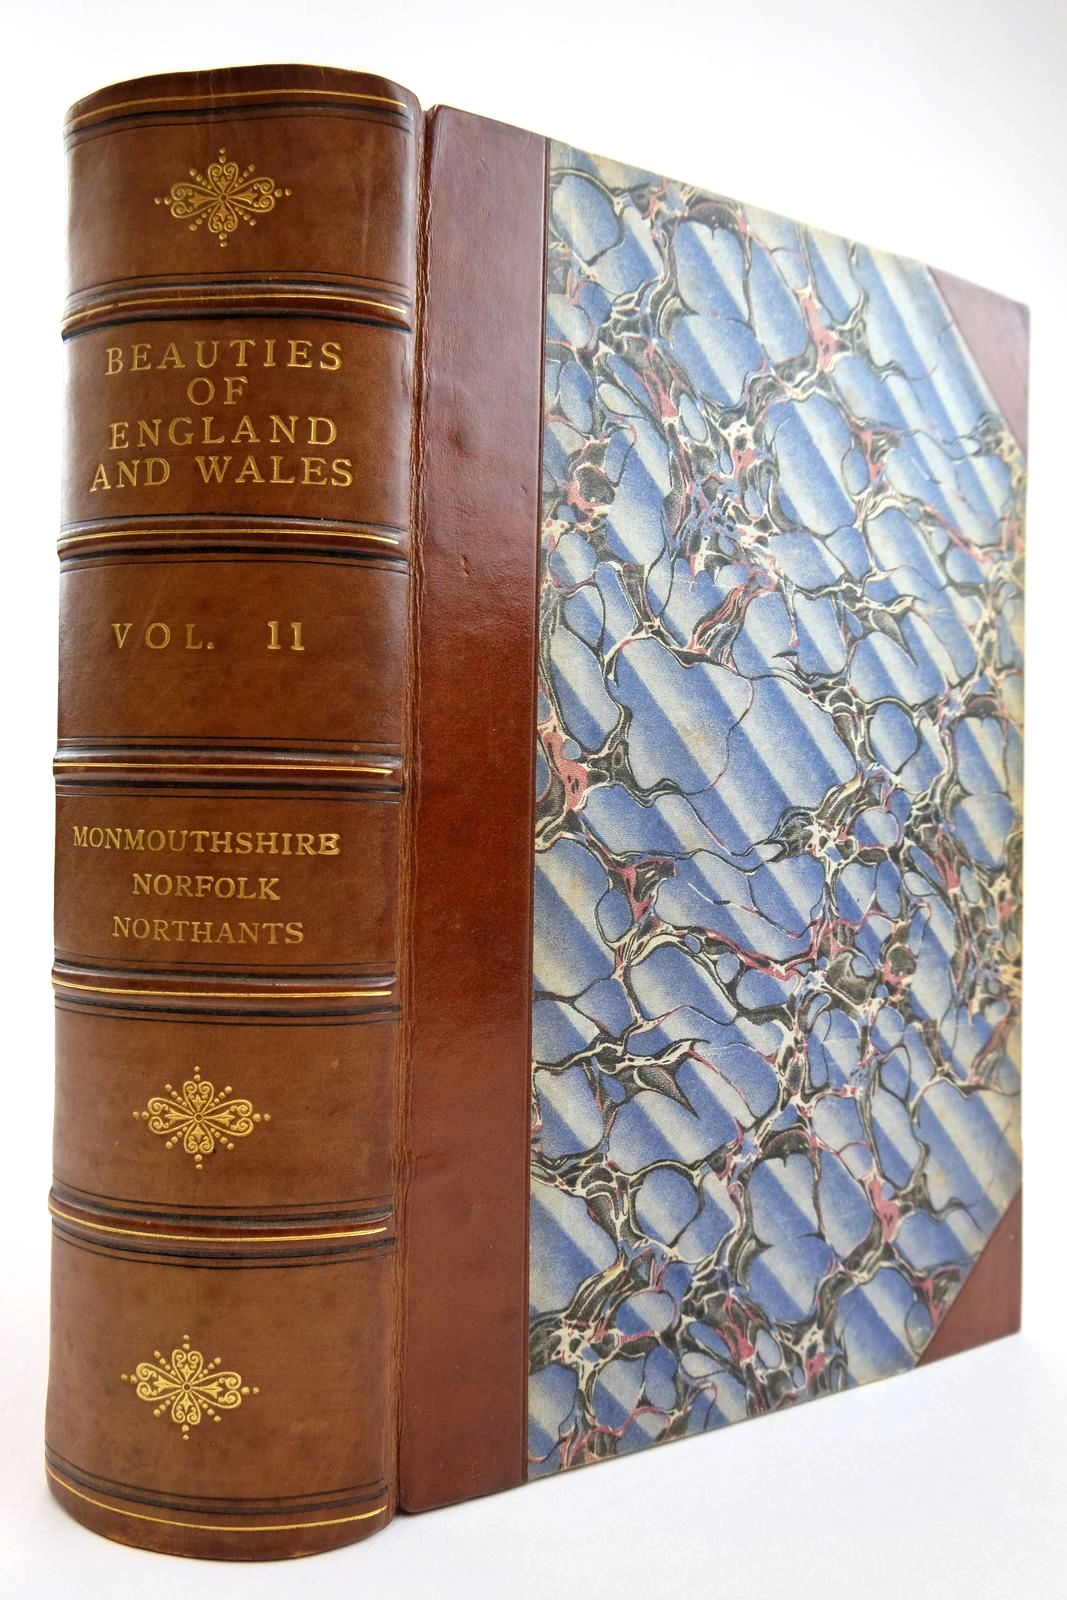 Photo of THE BEAUTIES OF ENGLAND AND WALES VOL. XI: MONMOUTHSHIRE, NORFOLK, NORTHANTS written by Britton, John Evans, J. published by Vernor, Hood & Sharpe, Longman, Hurst, Rees And Orme, J. Cuthell, J. Harris, B. Crosby & Co., J.M. Richardson (STOCK CODE: 2134132)  for sale by Stella & Rose's Books